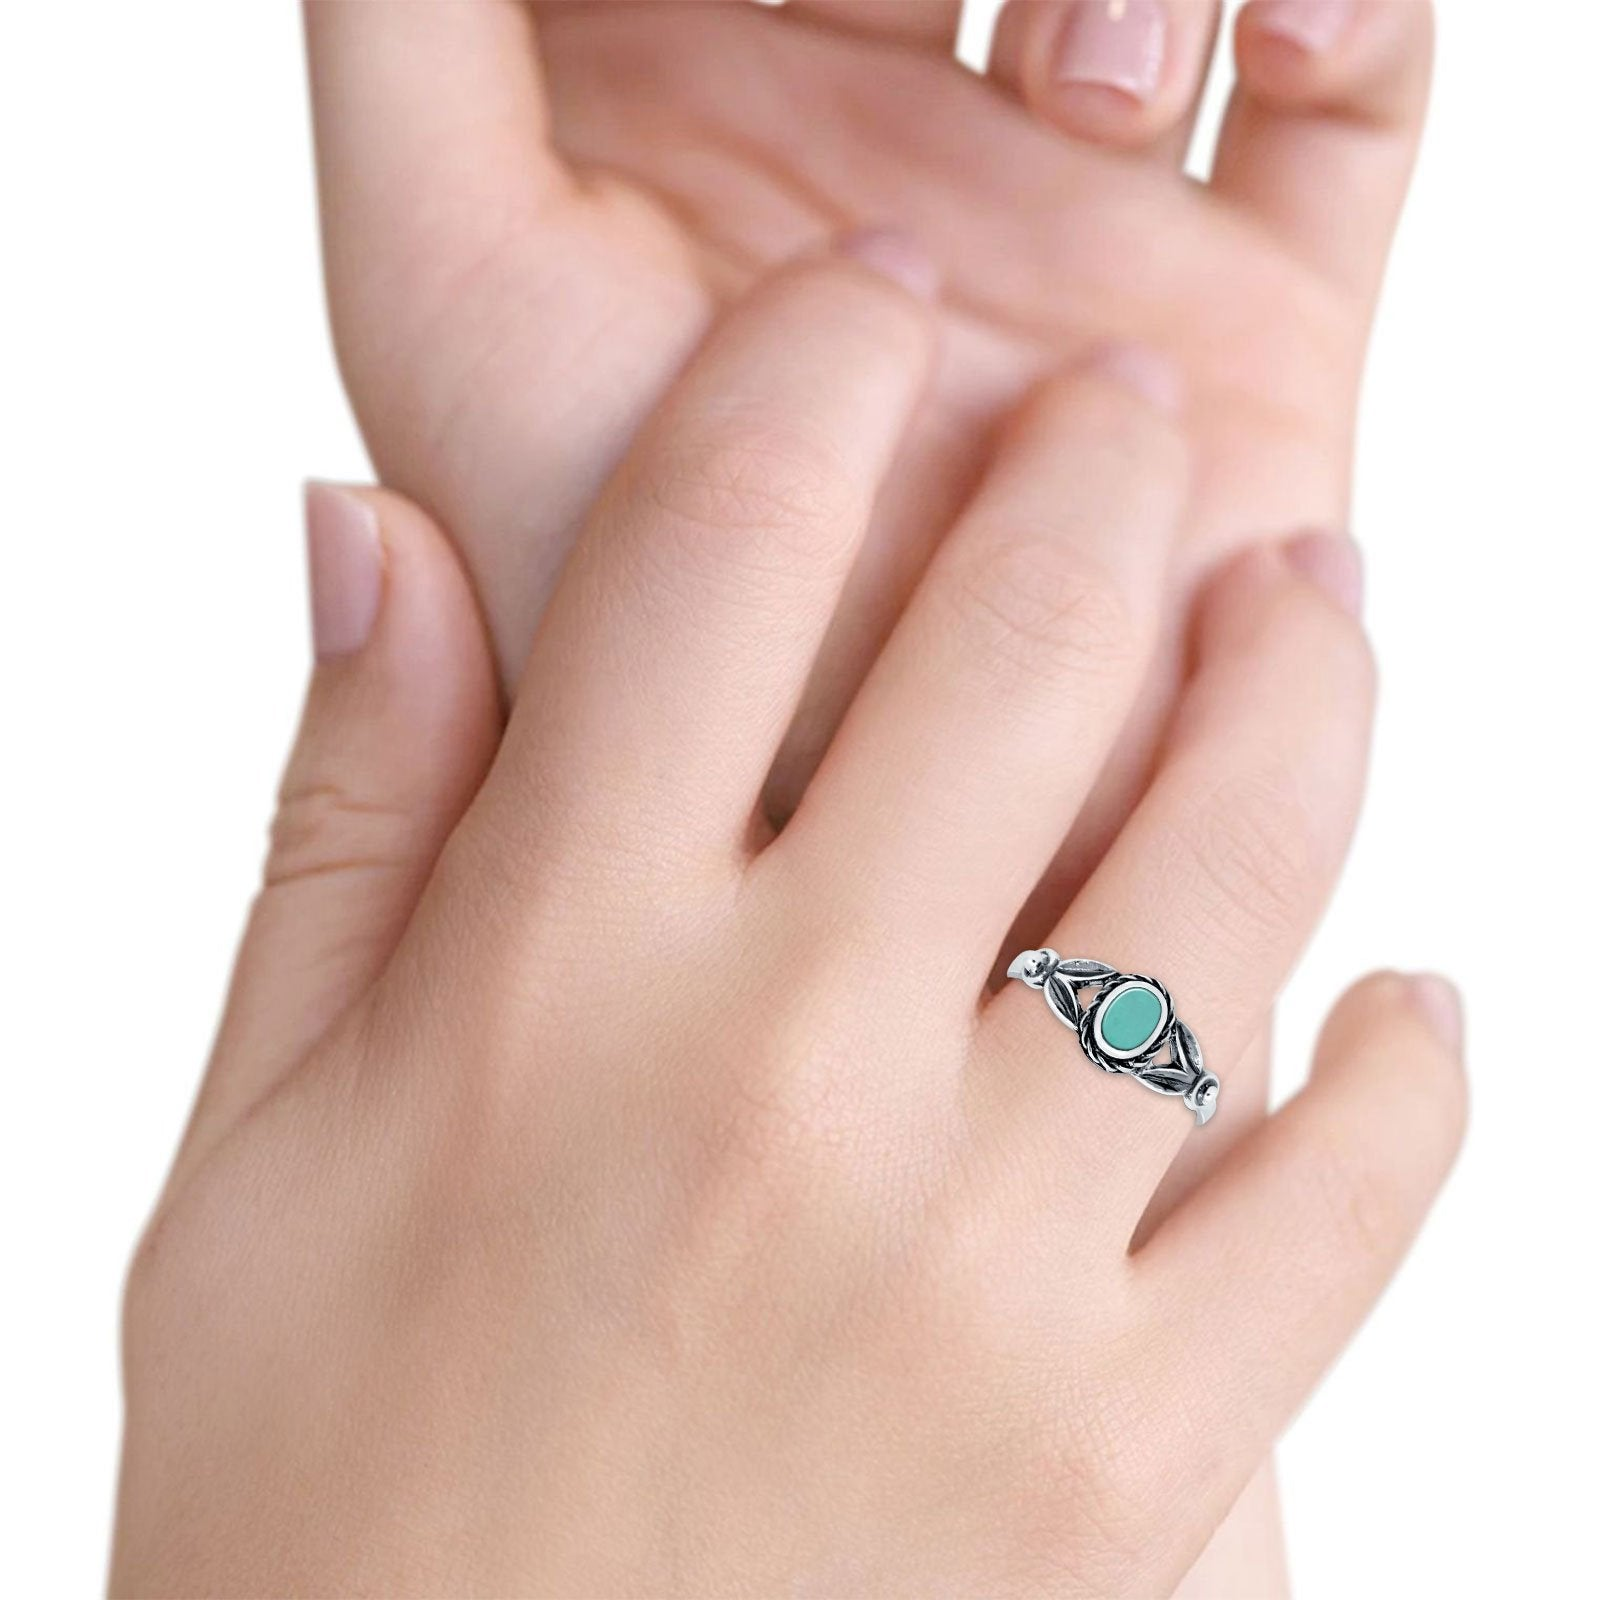 Art Deco Vintage Oval Simulated Turquoise Cubic Zirconia Ring 925 Sterling Silver